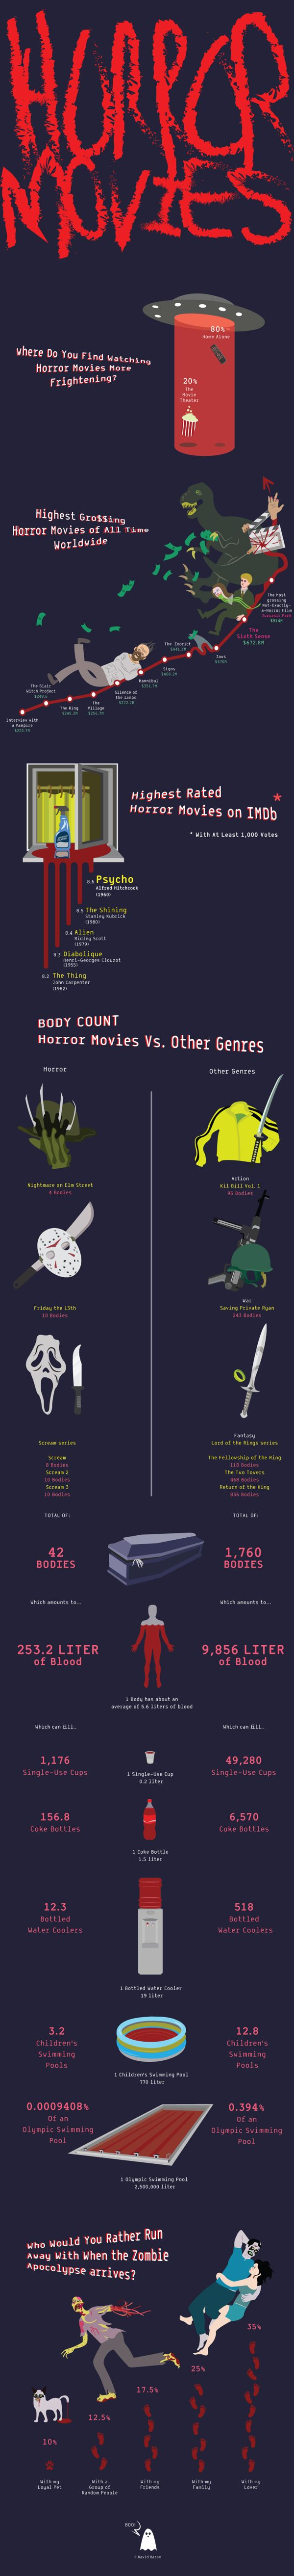 images about horror infographics power tools infographics facts on horror movies by david b via behance